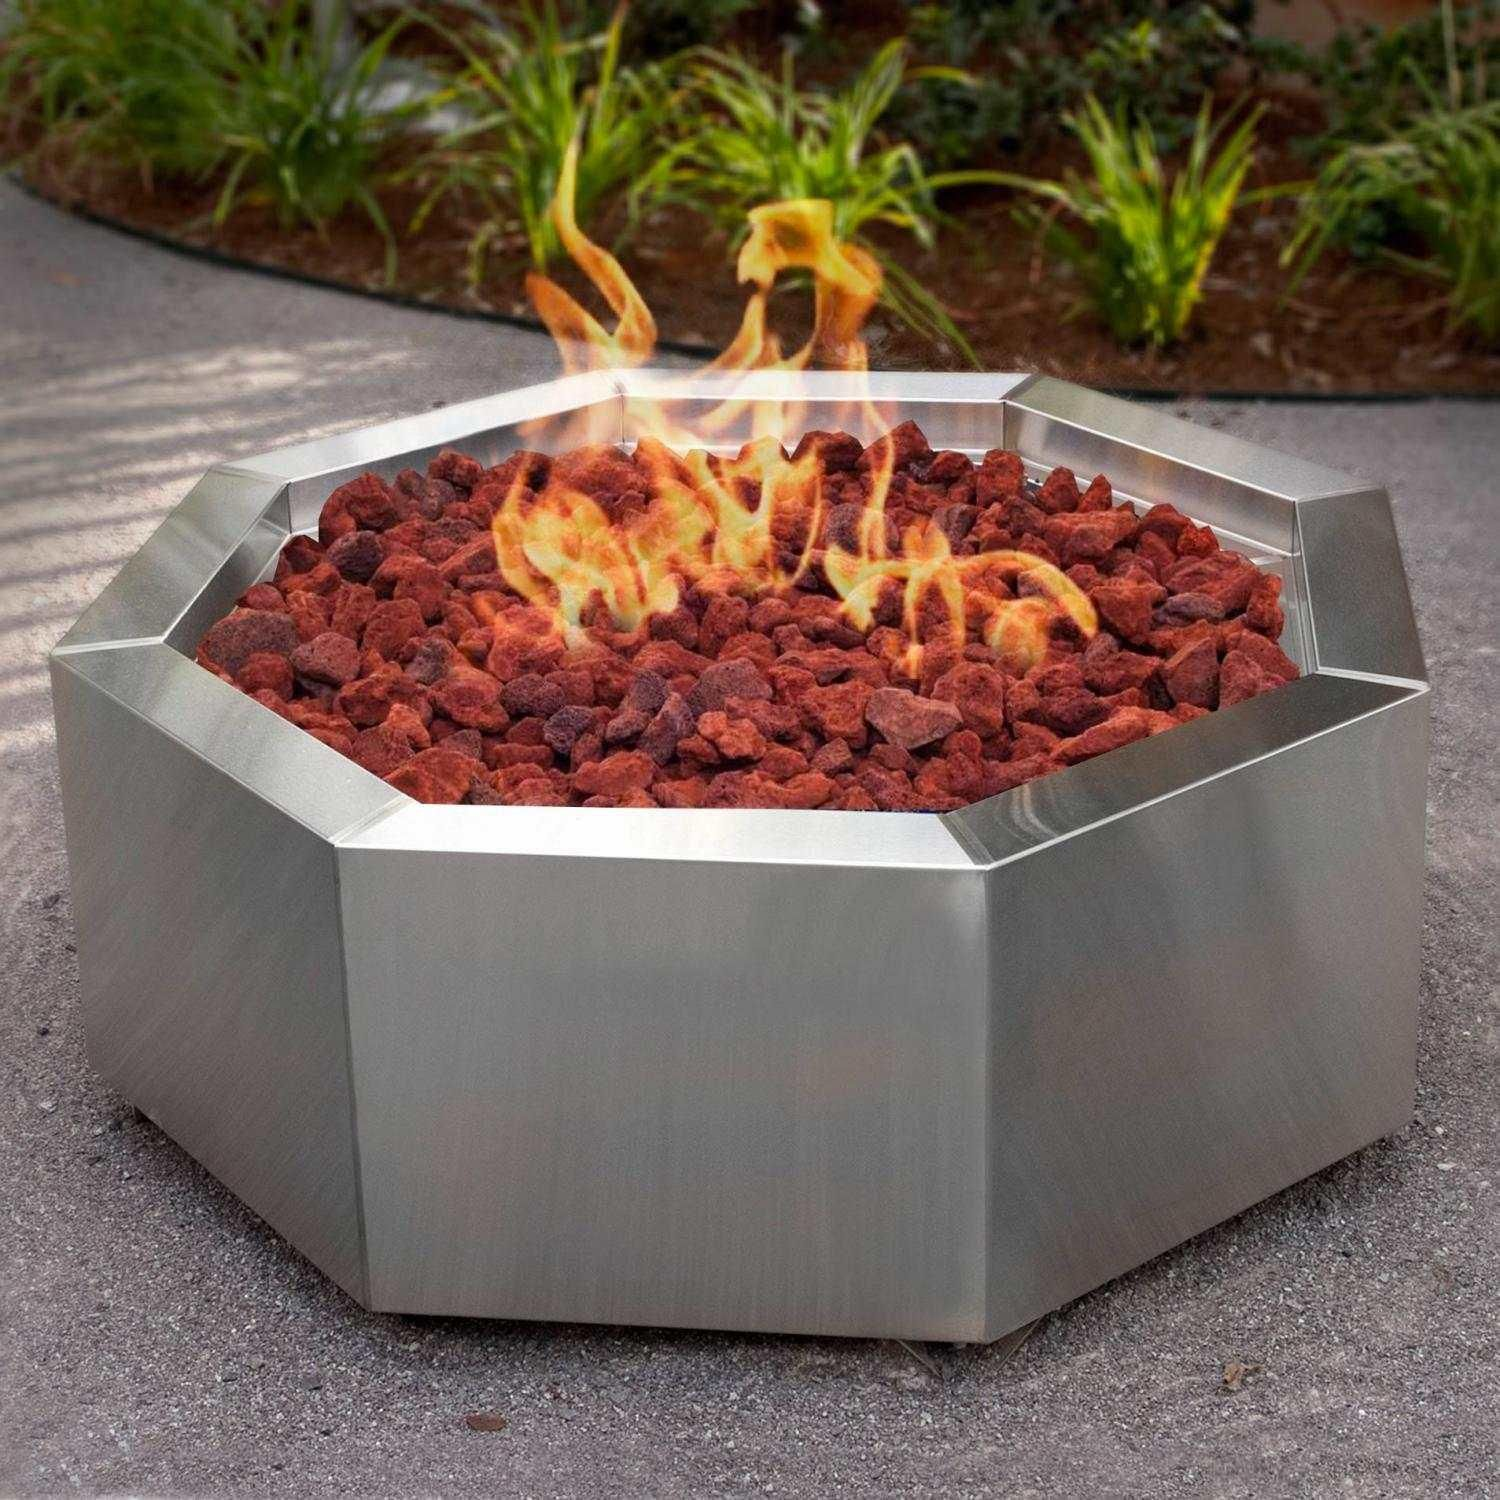 5277332df24dcd7f2c9c344bd59ed4bf Top Result 50 Awesome Gas Fire Ring Photos 2018 Kgit4